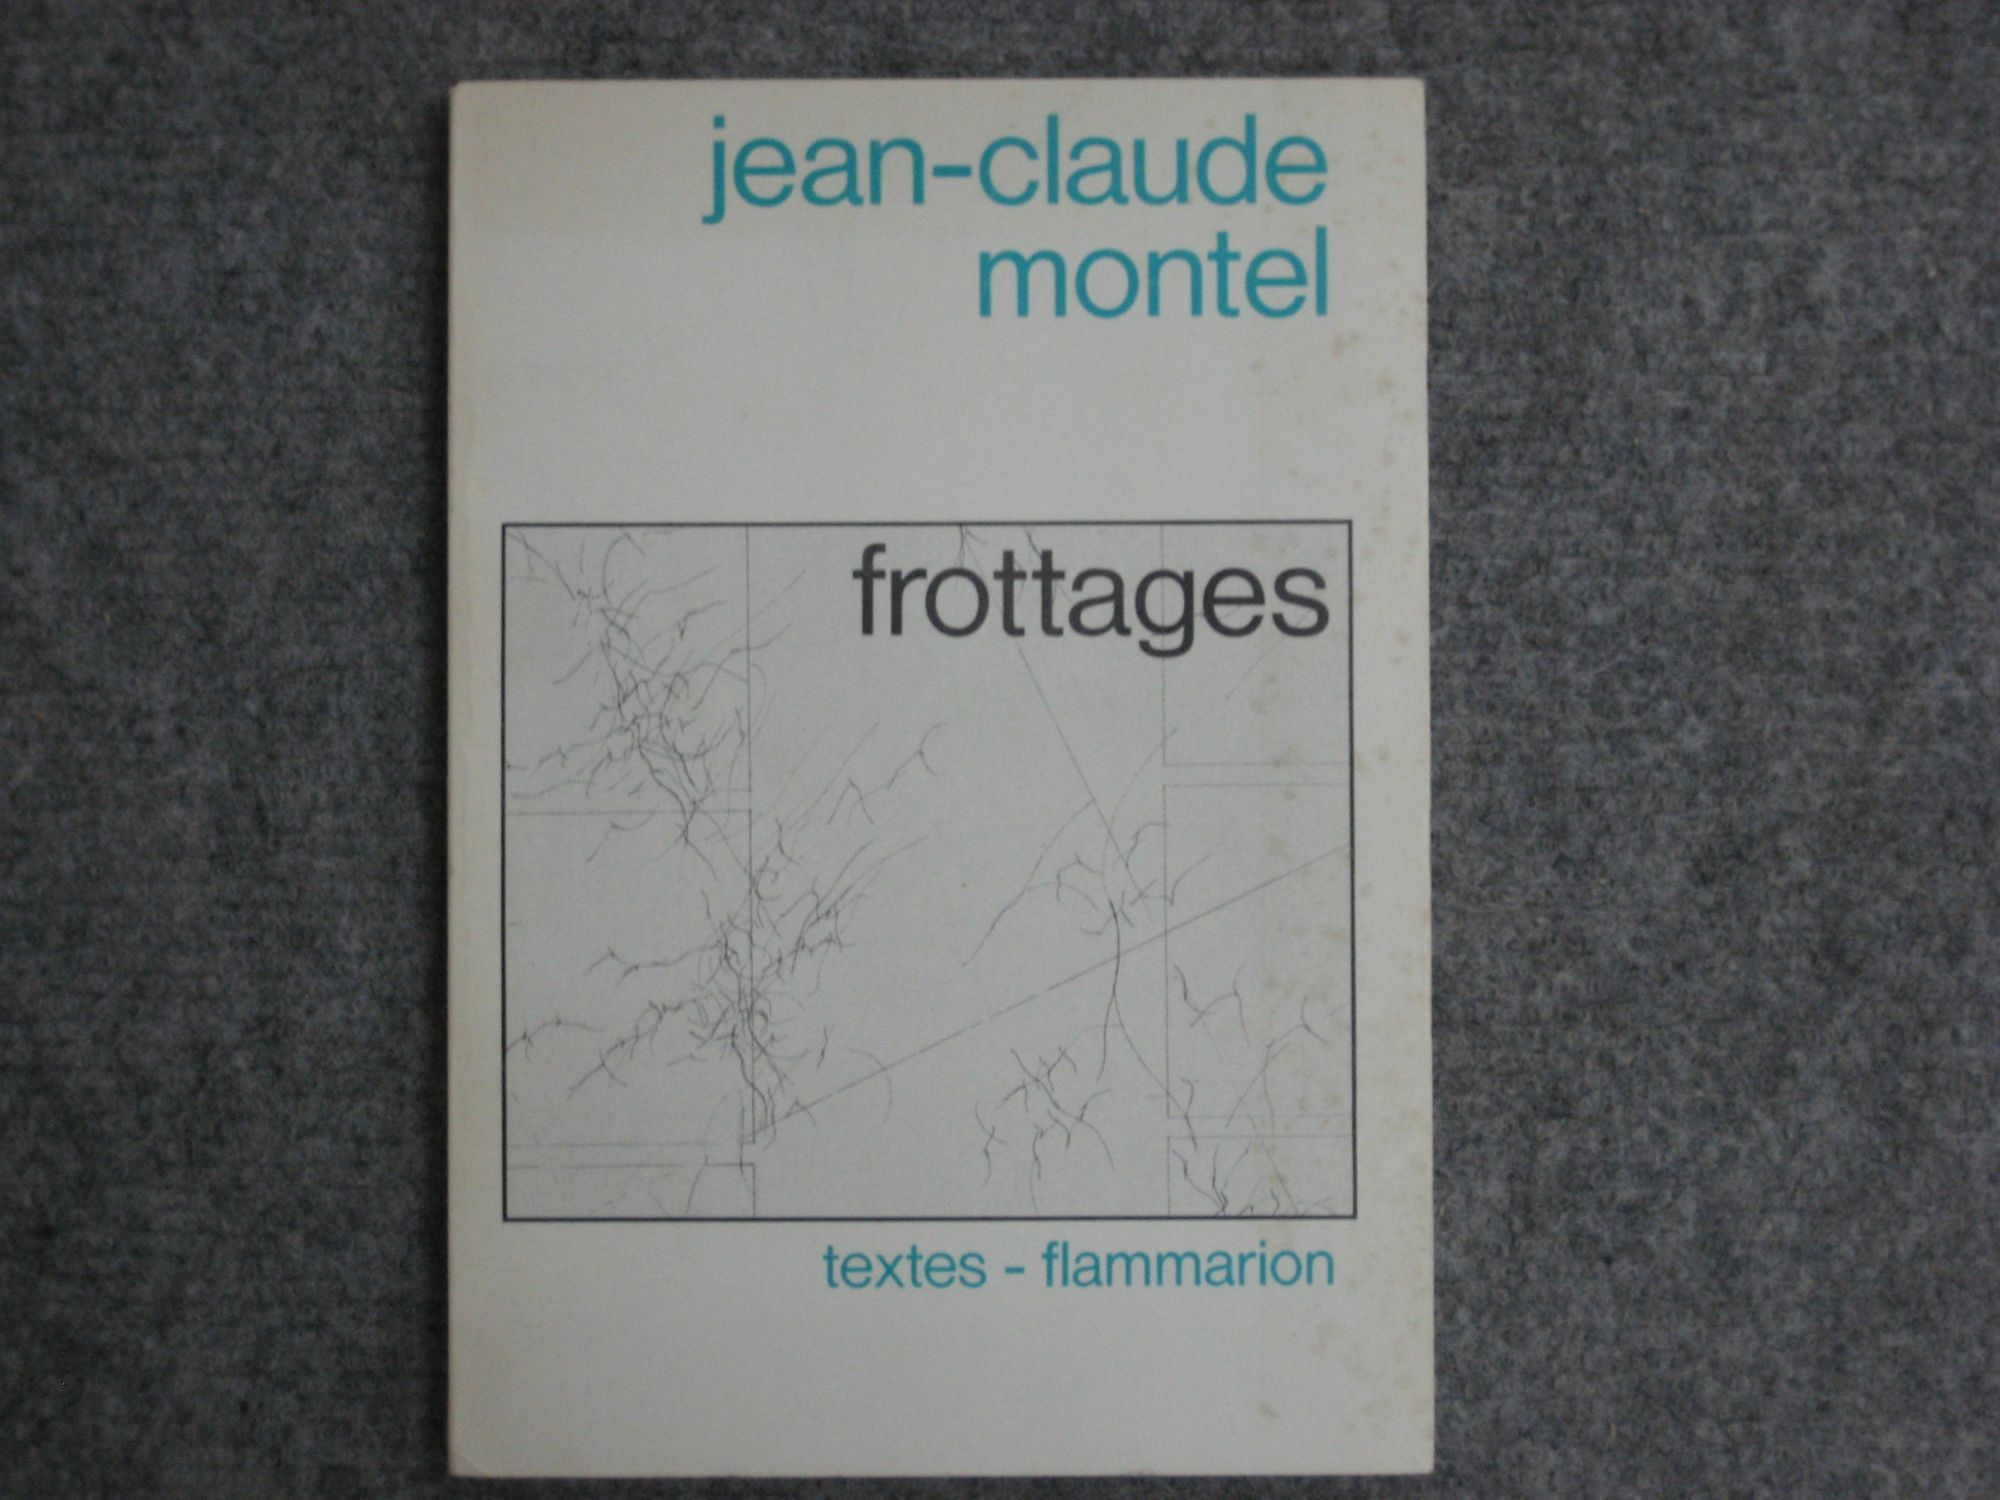 Frottages